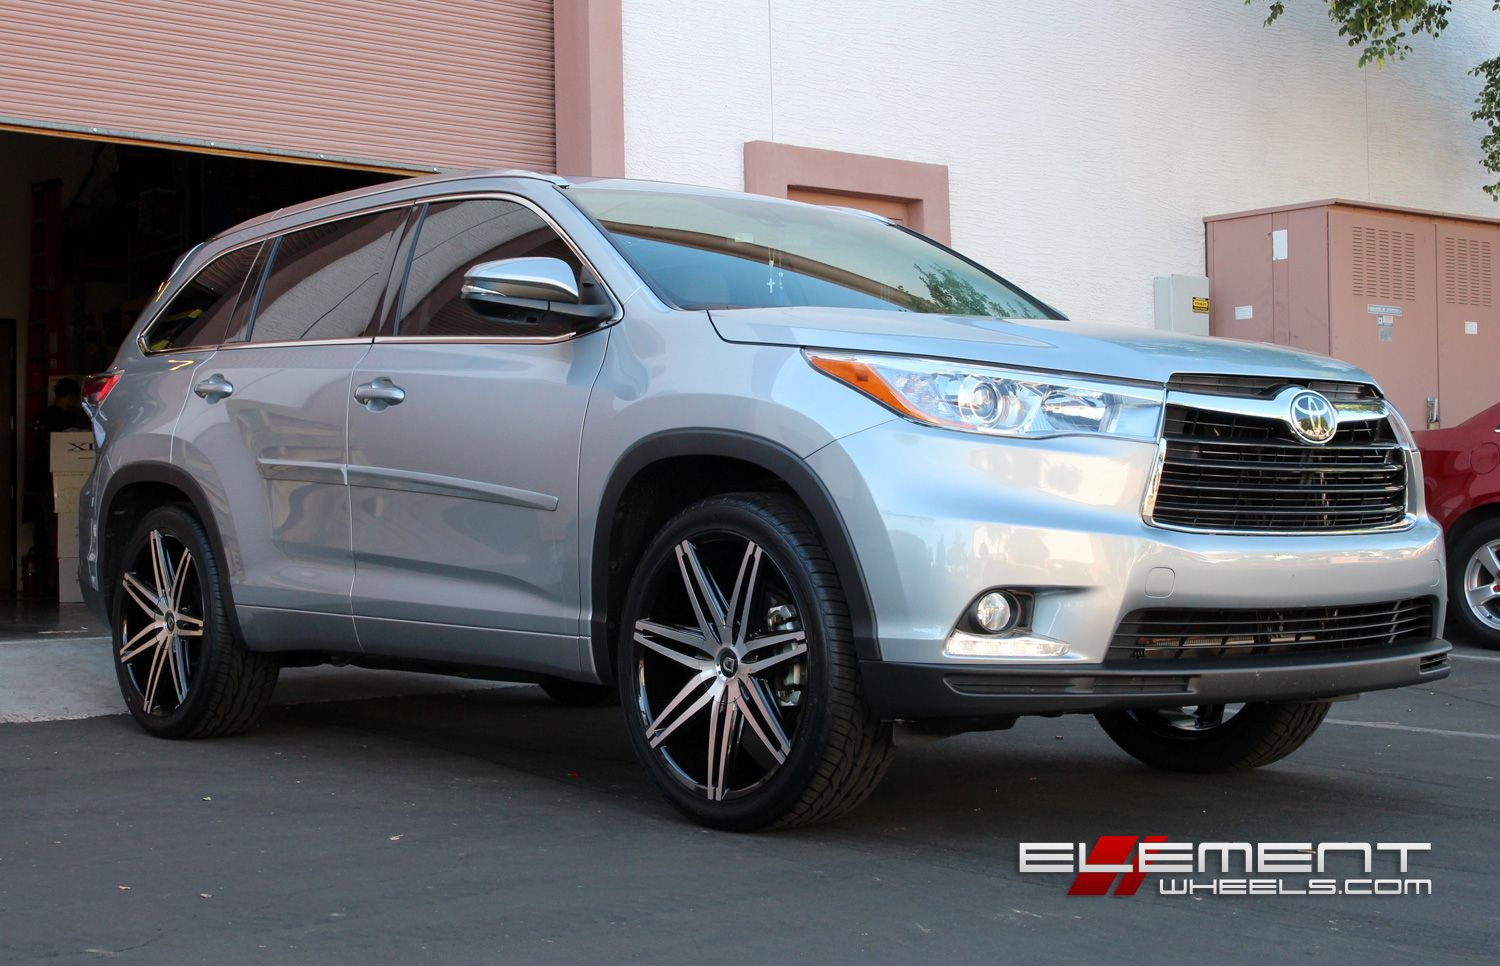 Toyota Highlander Wheels Custom Rim And Tire Packages Custom Wheels Toyota Highlander Custom Rims And Tires